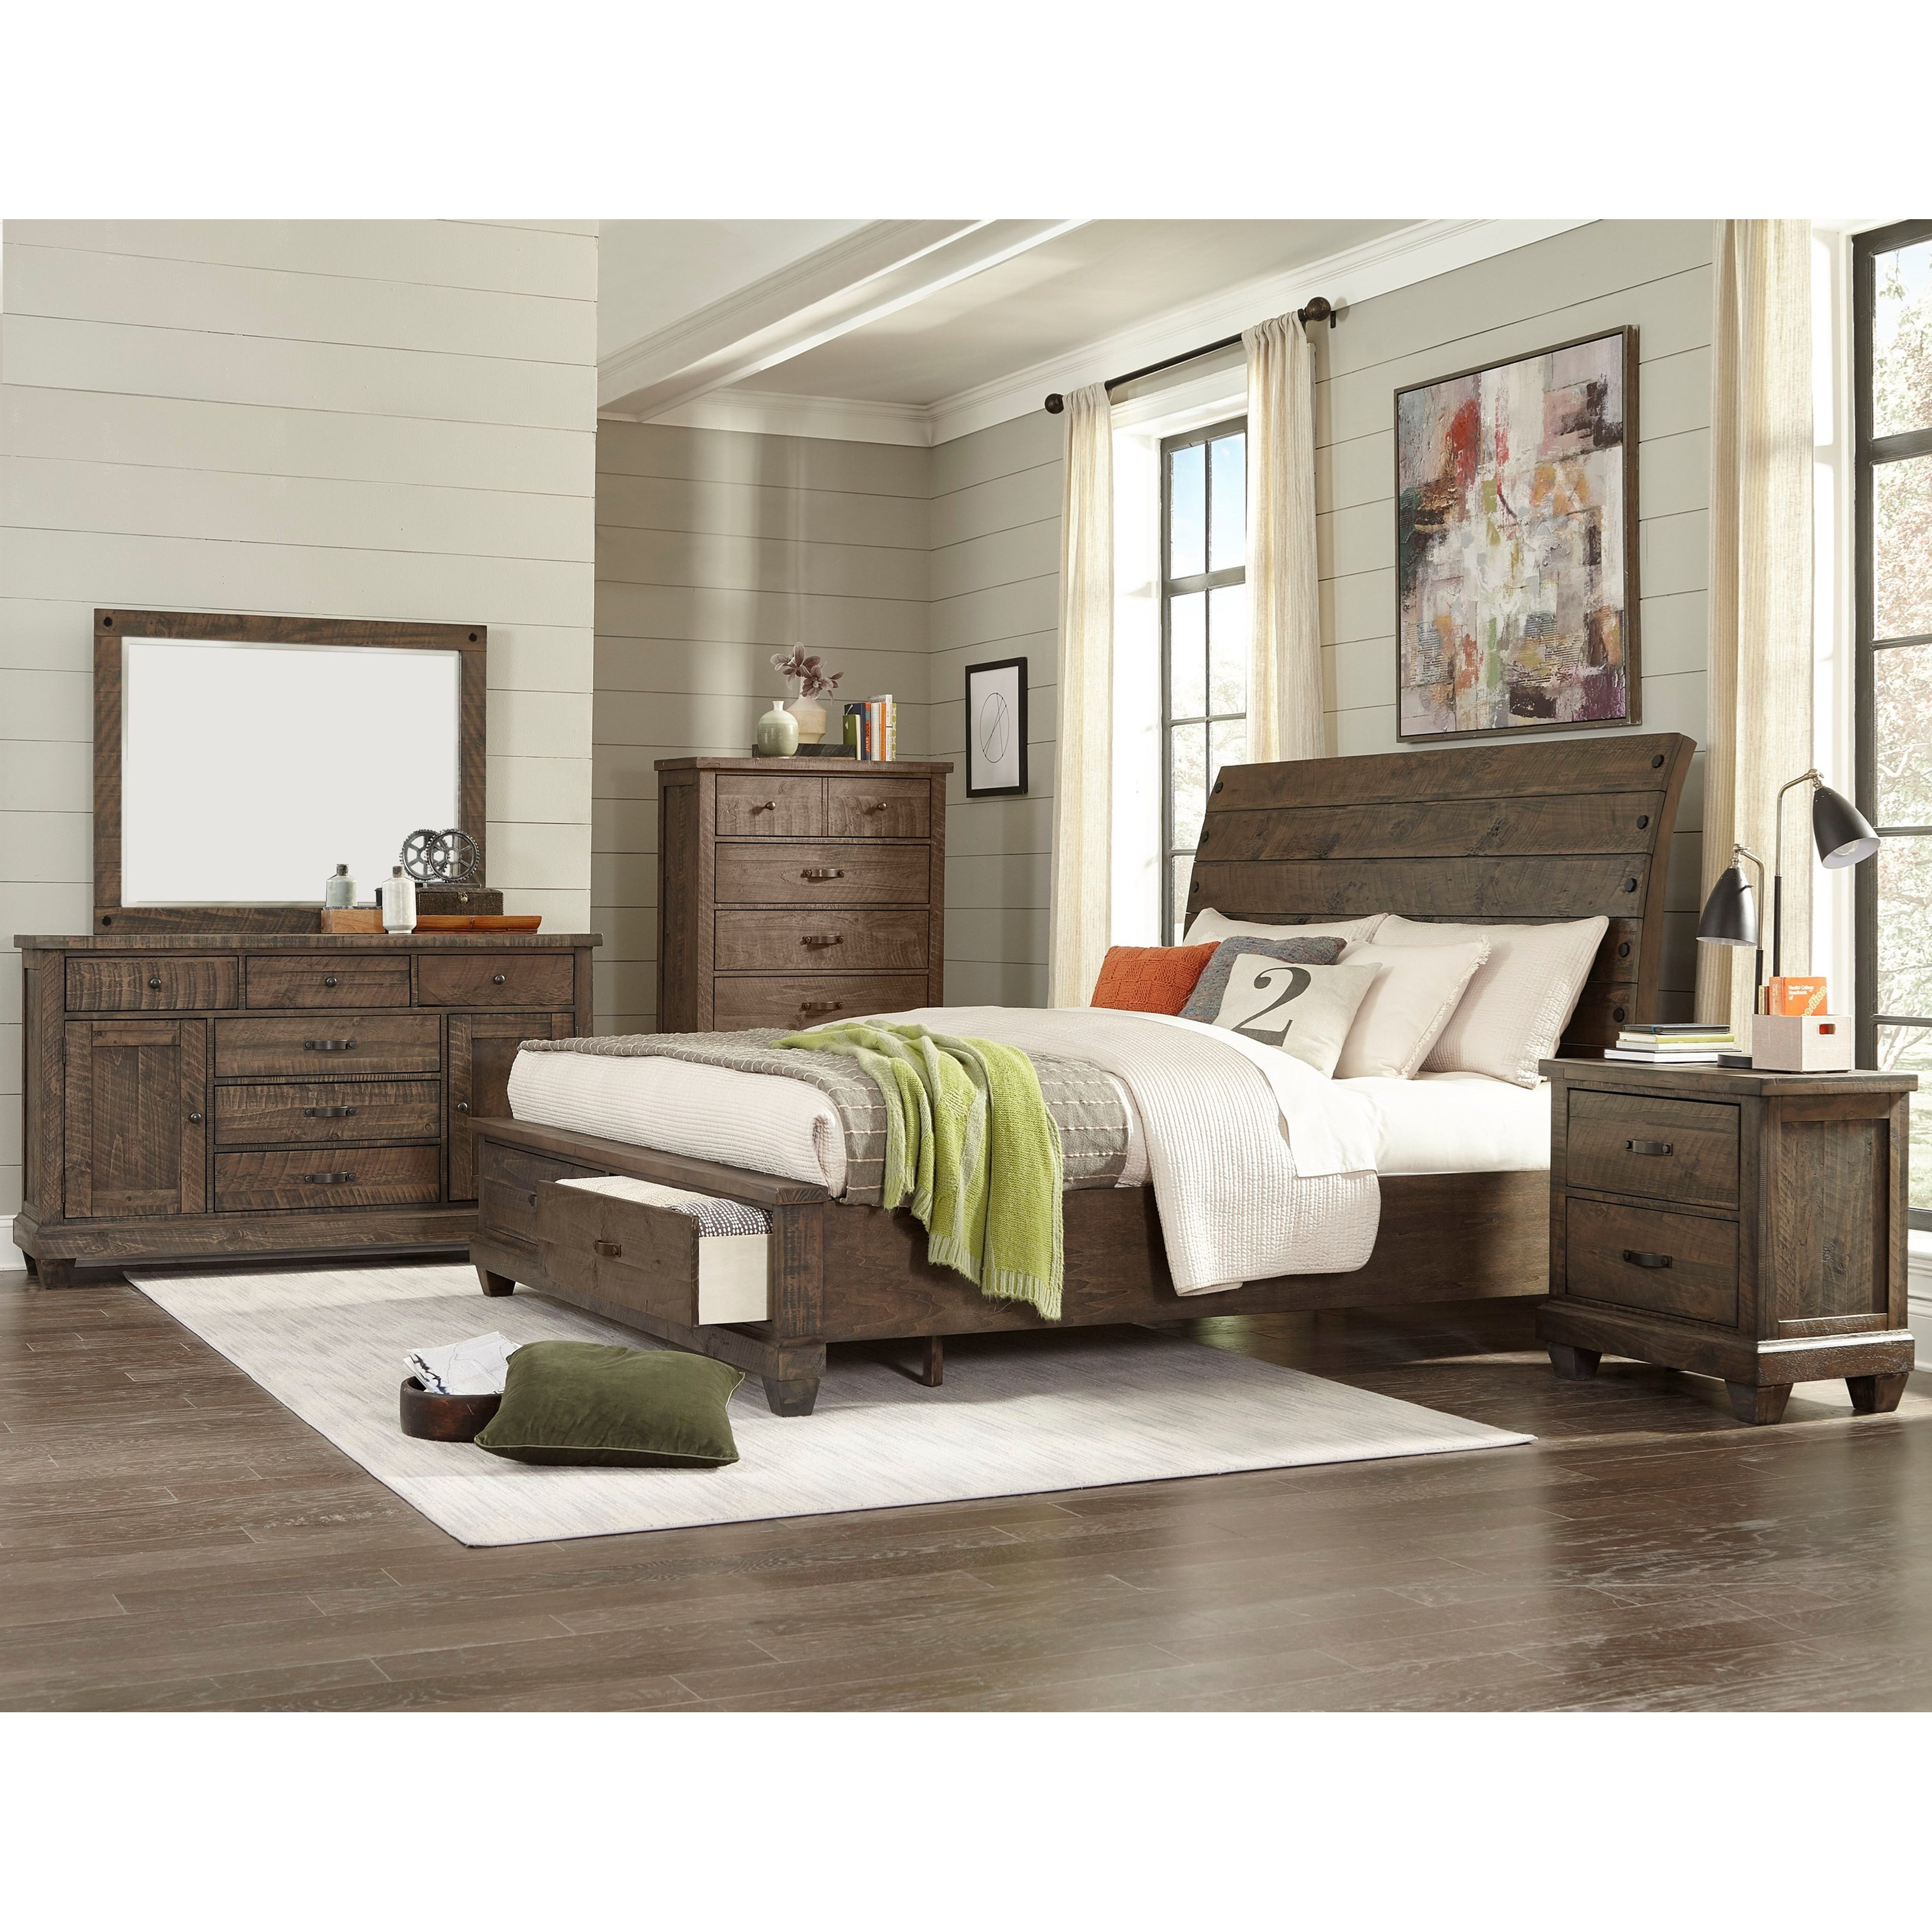 C7131A Queen Bedroom Group - 0 by Lifestyle at Beck's Furniture